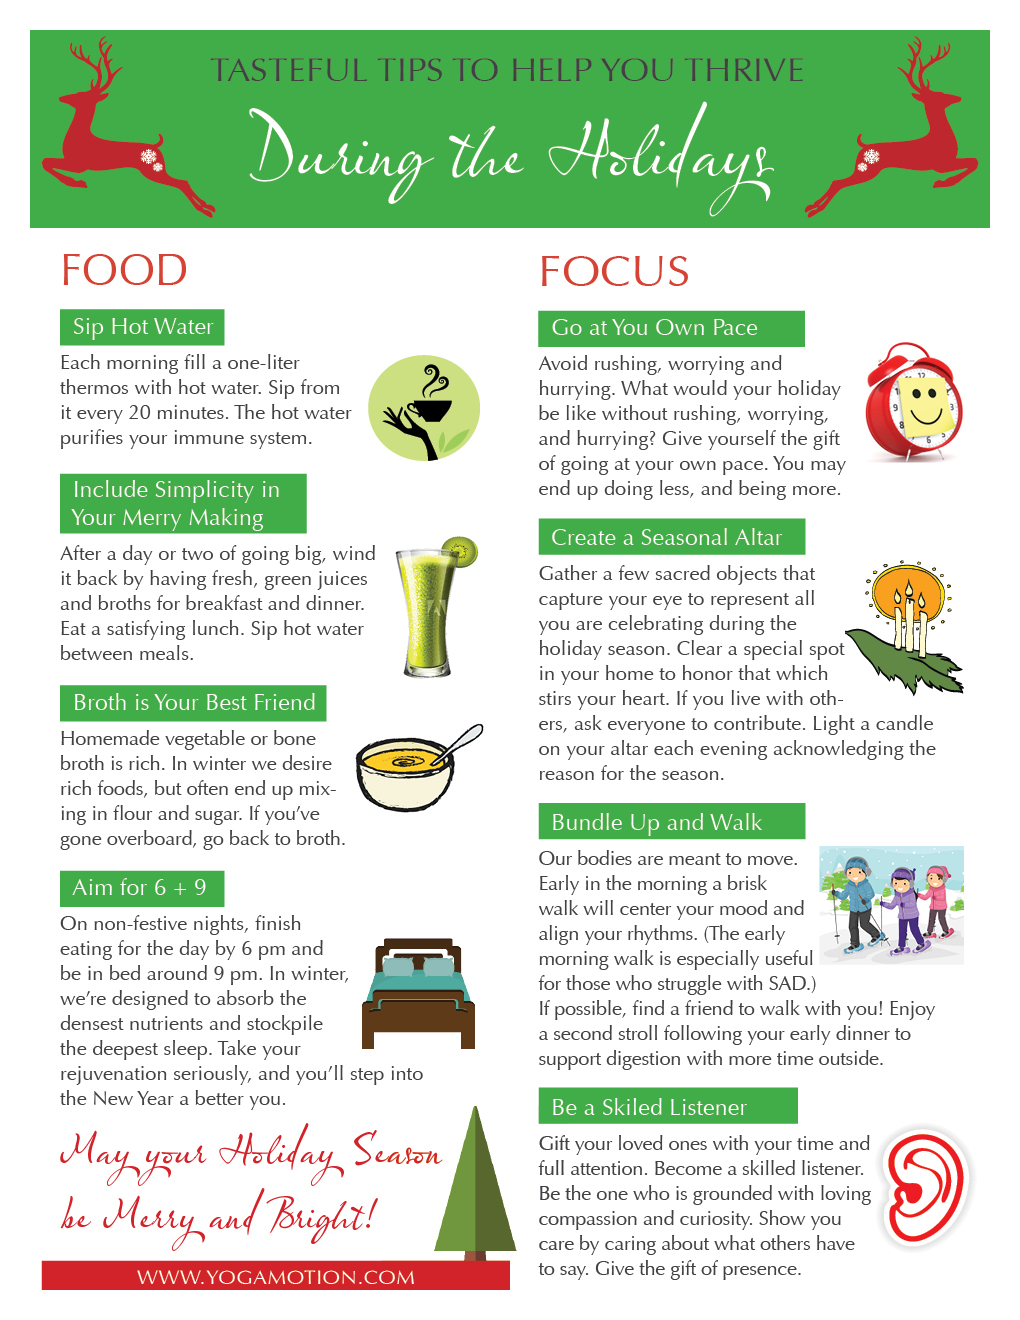 tips-for-the-holidays